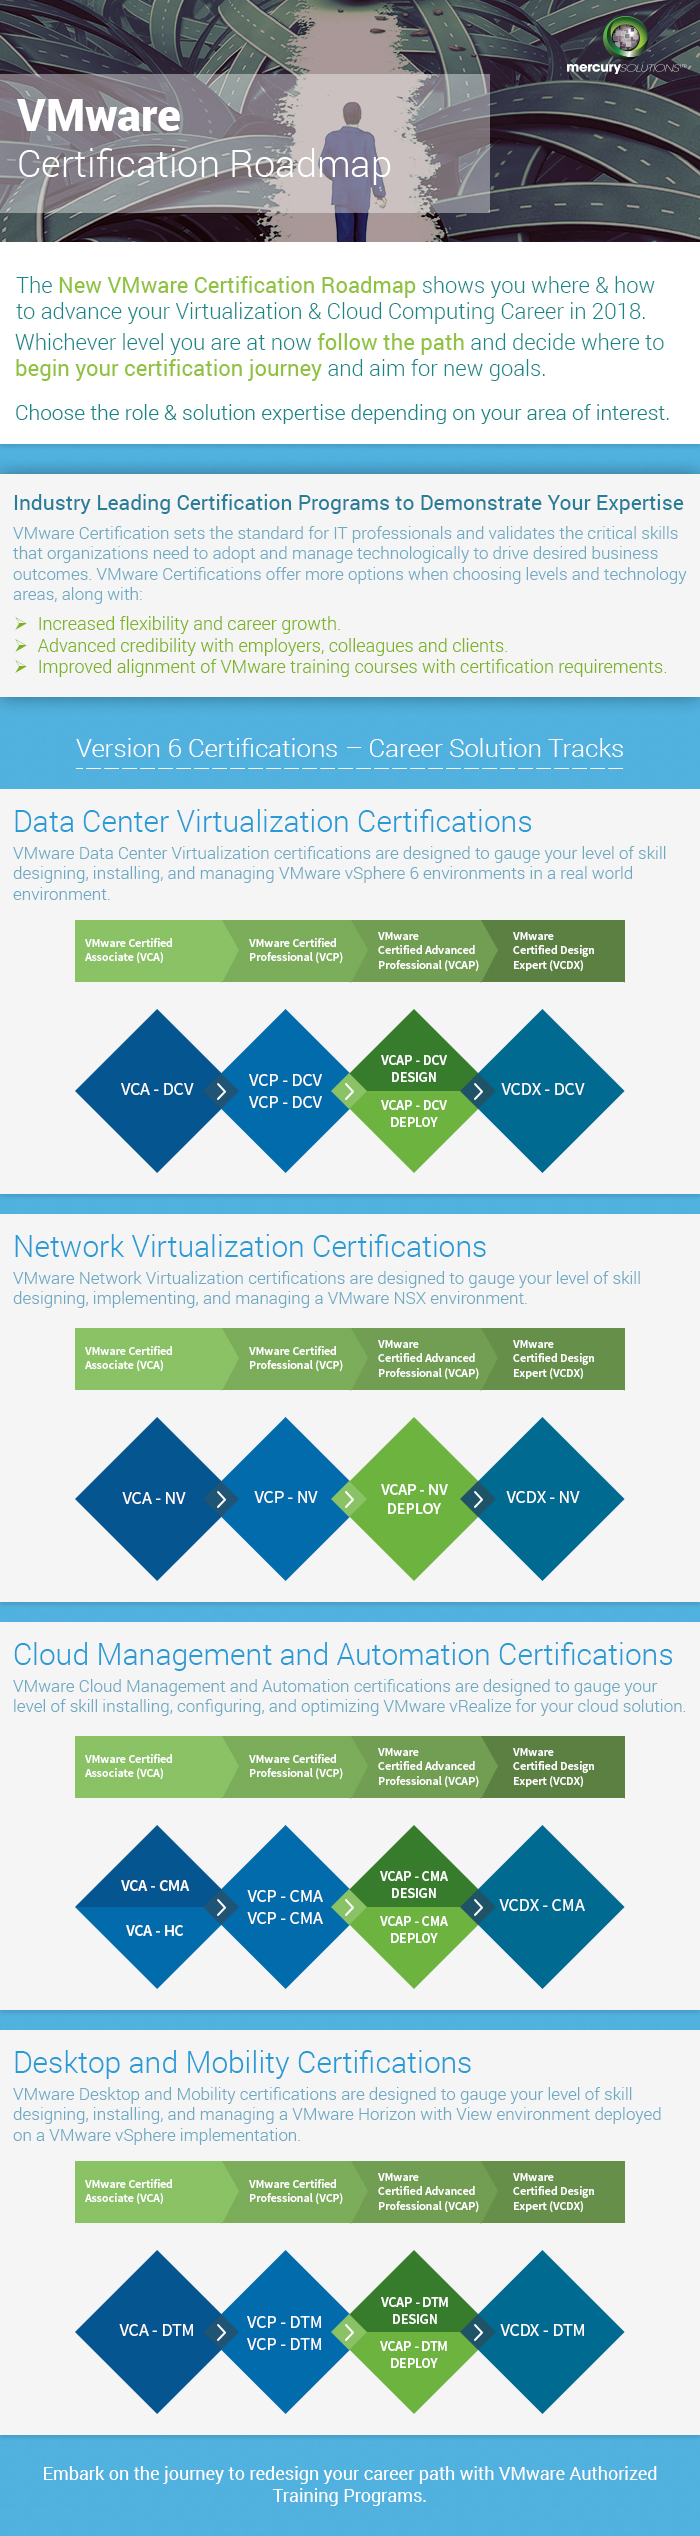 vmware certification path for begginers